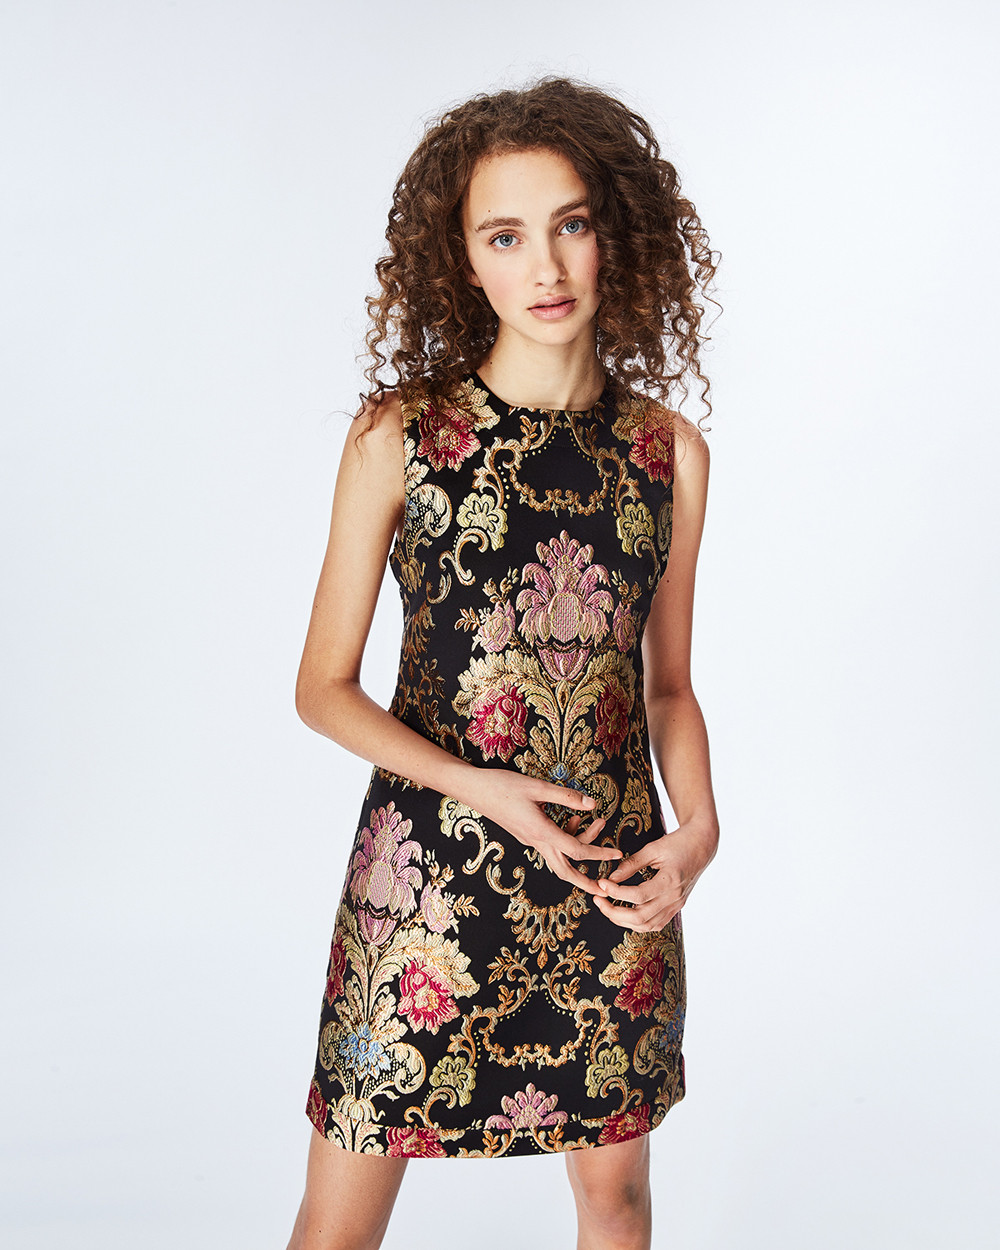 Nicole Miller Juno Lace Up Dress, $440